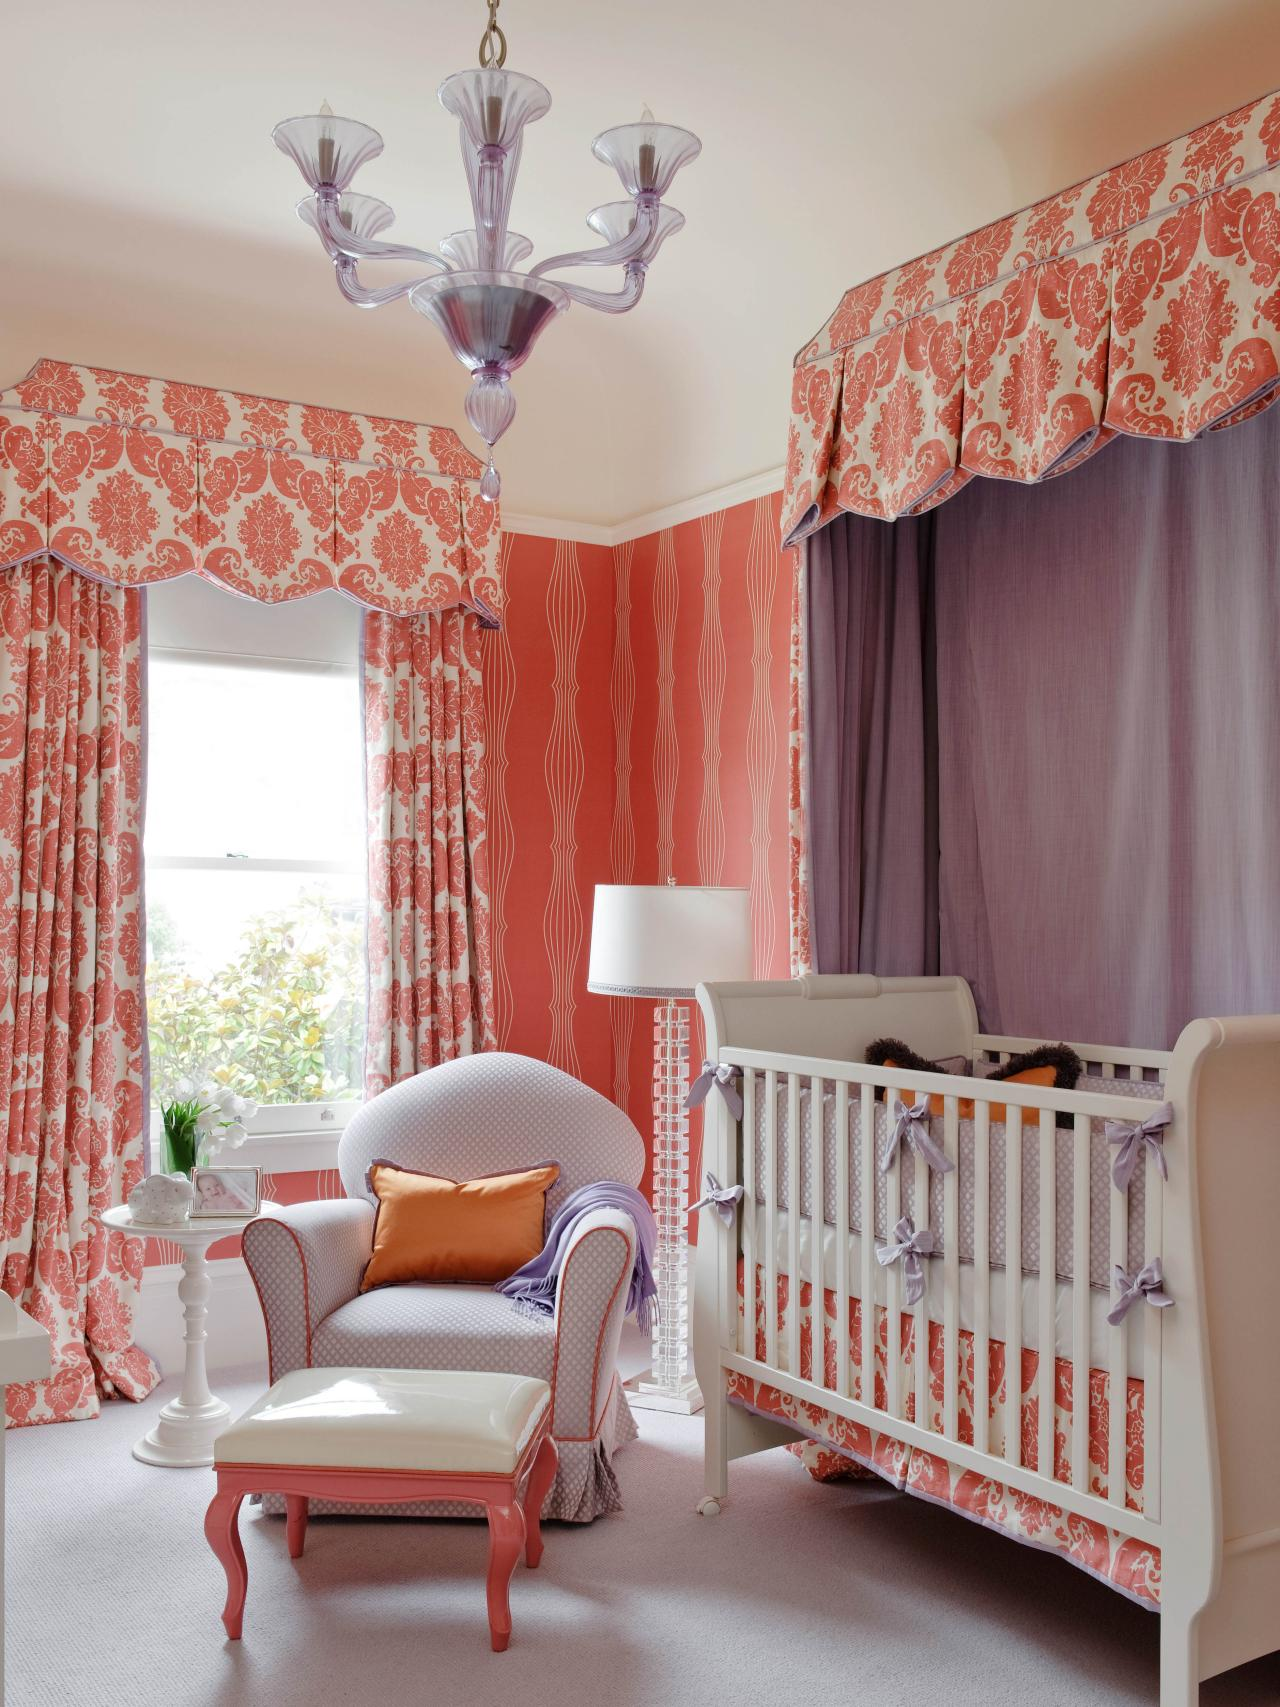 Coral Painted Rooms 10 Tips For Picking Paint Colors Hgtv